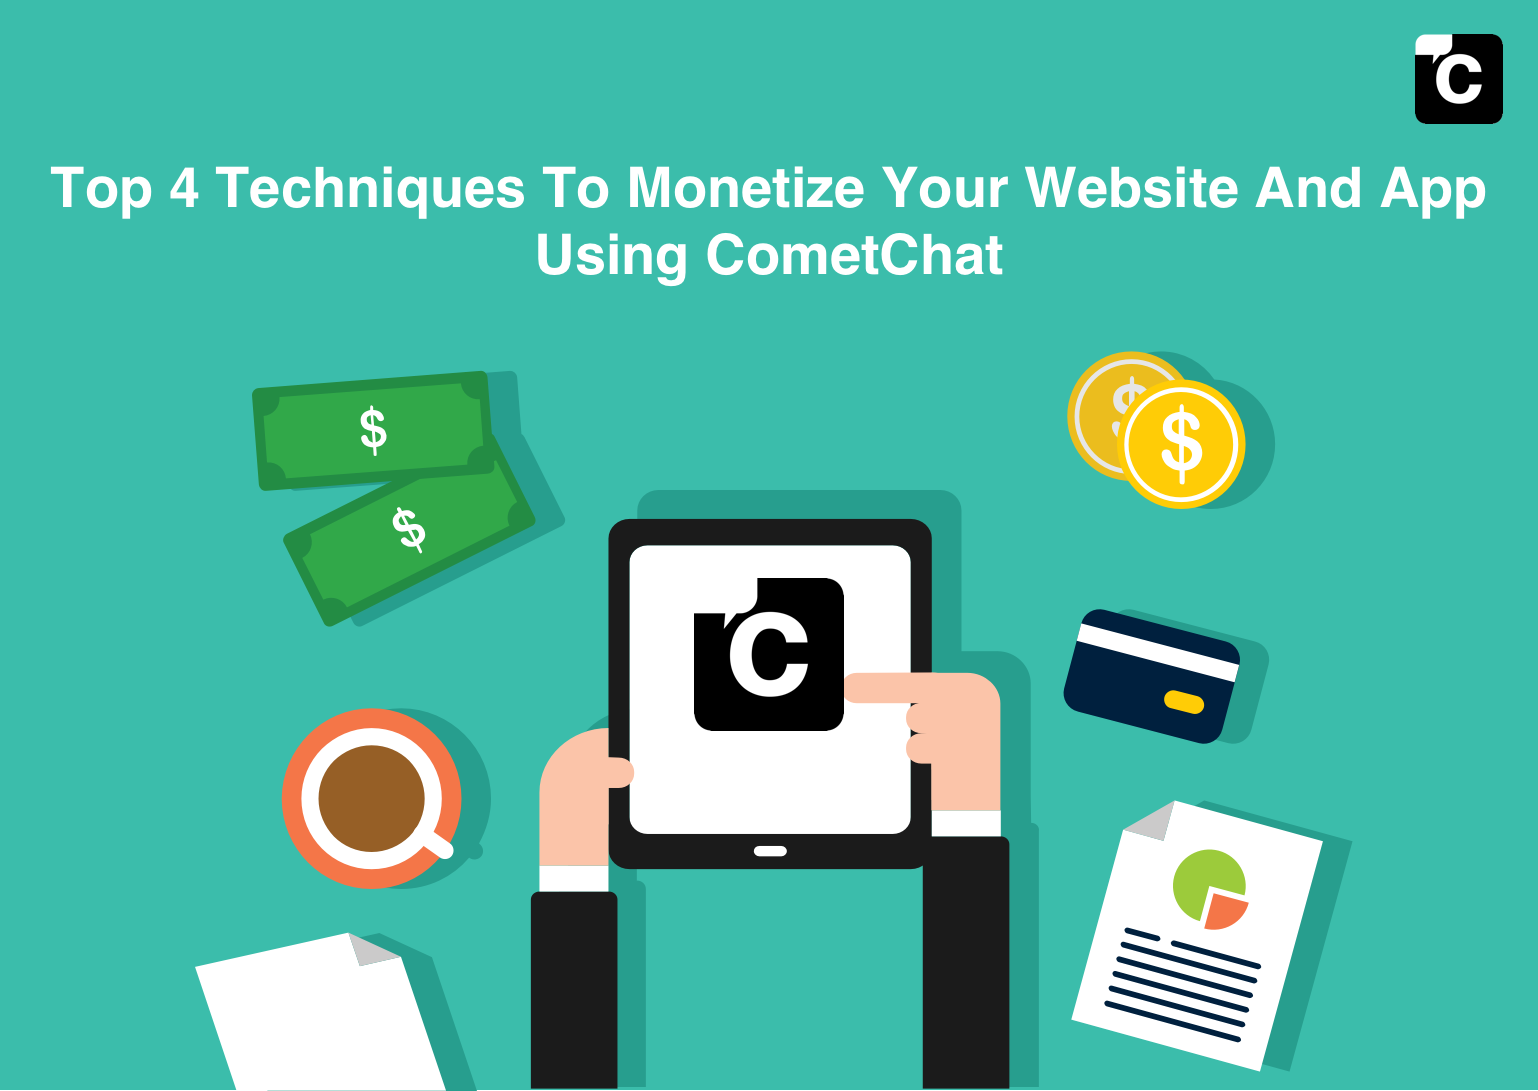 Top 4 Techniques to Monetize your Website and App using CometChat